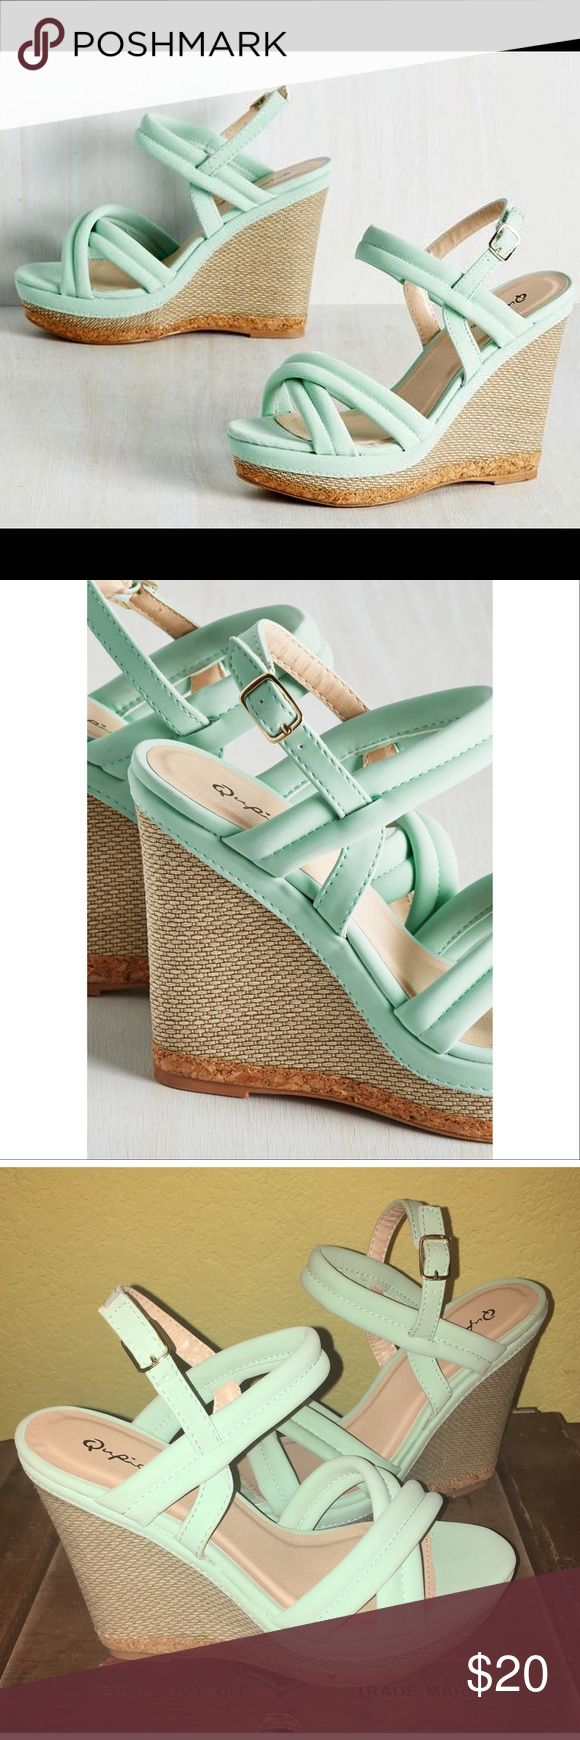 """Modcloth-Qupid mint wedges Size 7 Purchased on ModCloth. """"Textured Perfection Wedge"""" Size 7 Only worn once, I have way too much mint so these lovelies never get a chance to go out 😁 Box was delivered damaged from ModCloth so being sold without box. Modcloth Shoes Wedges"""